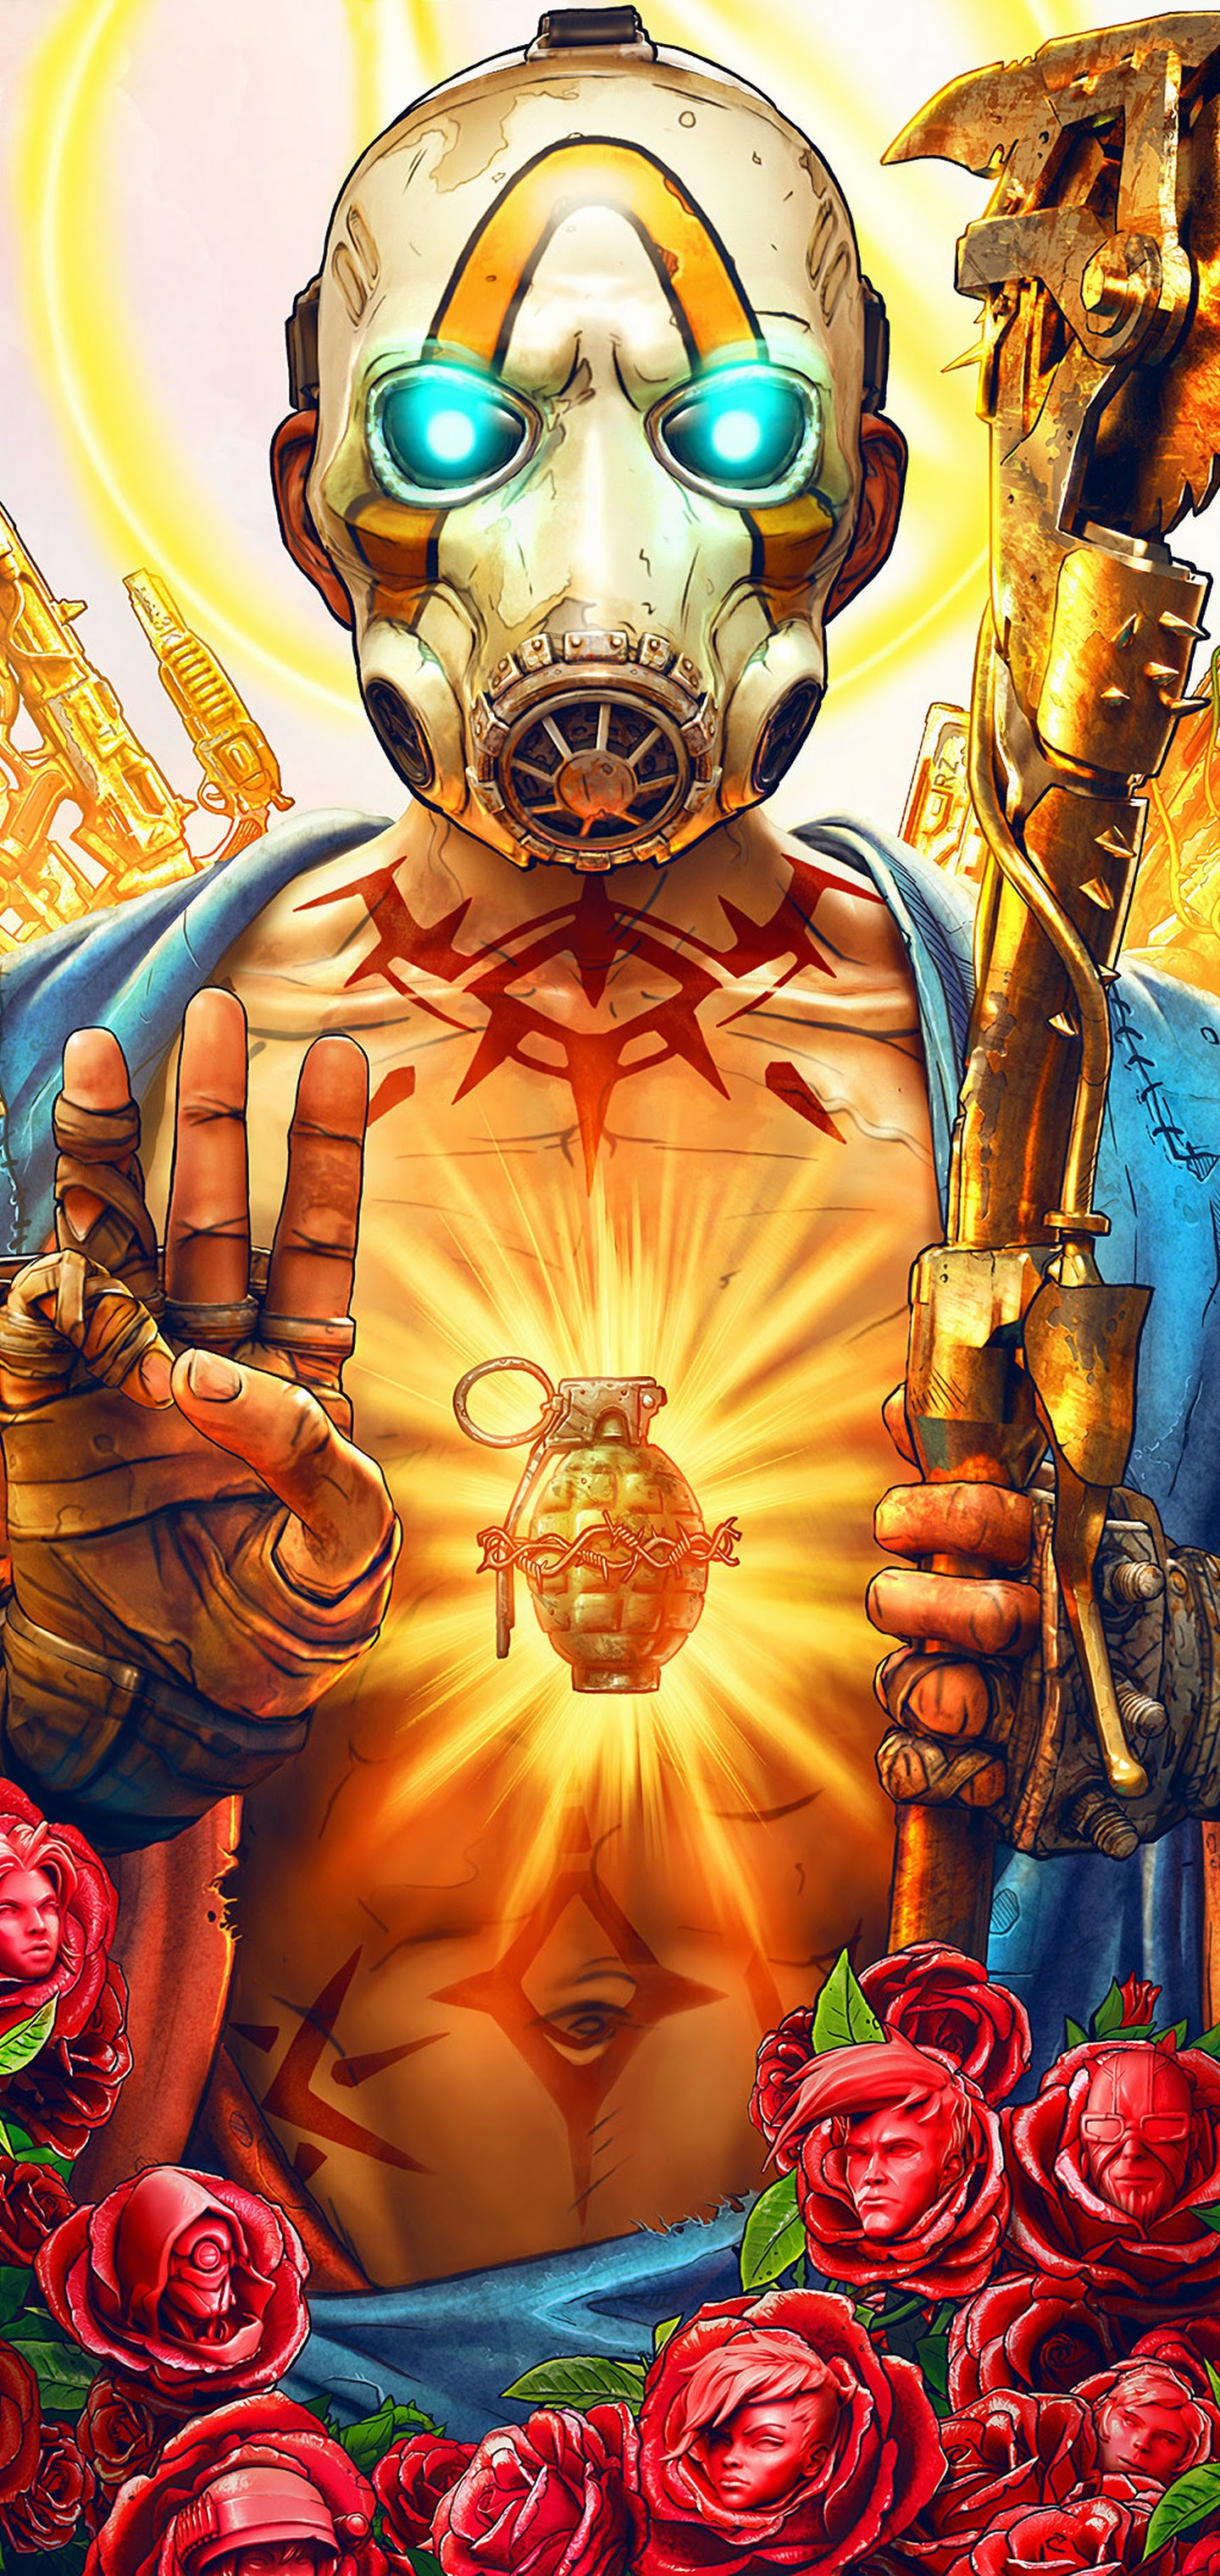 Borderlands 3 4k Wallpaper 10